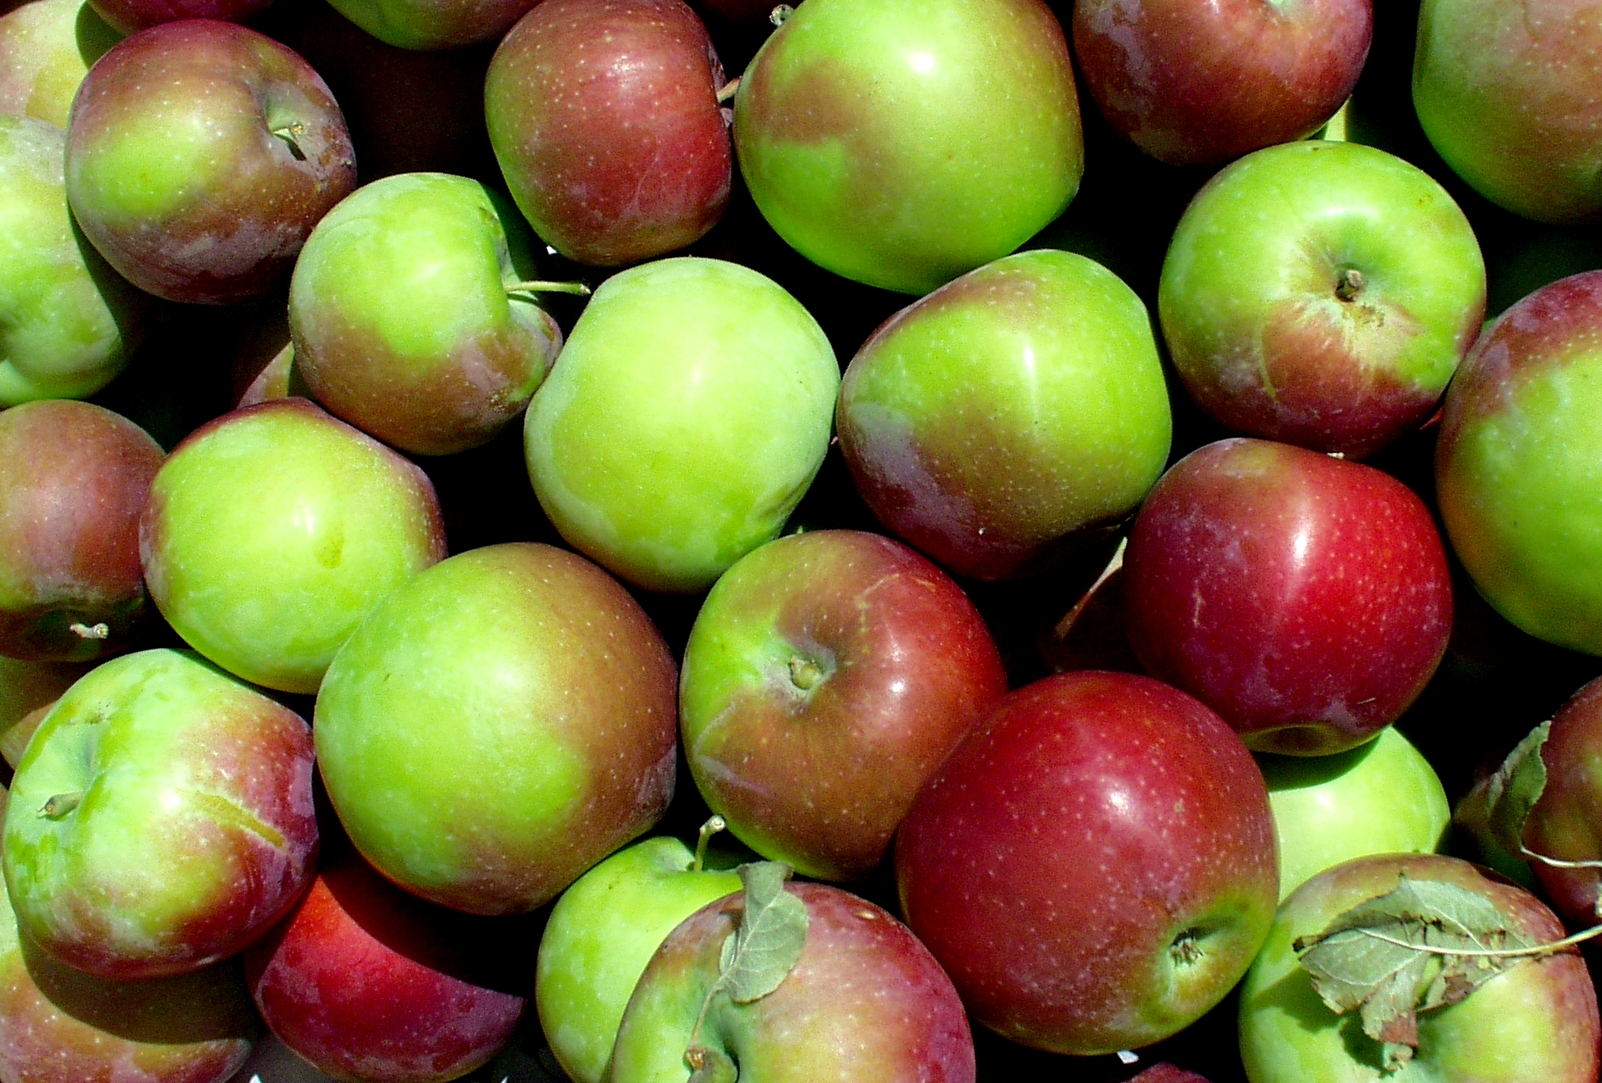 Lorry apples from ACMA. Photo copyright 2009 by Zachary D. Lyons.